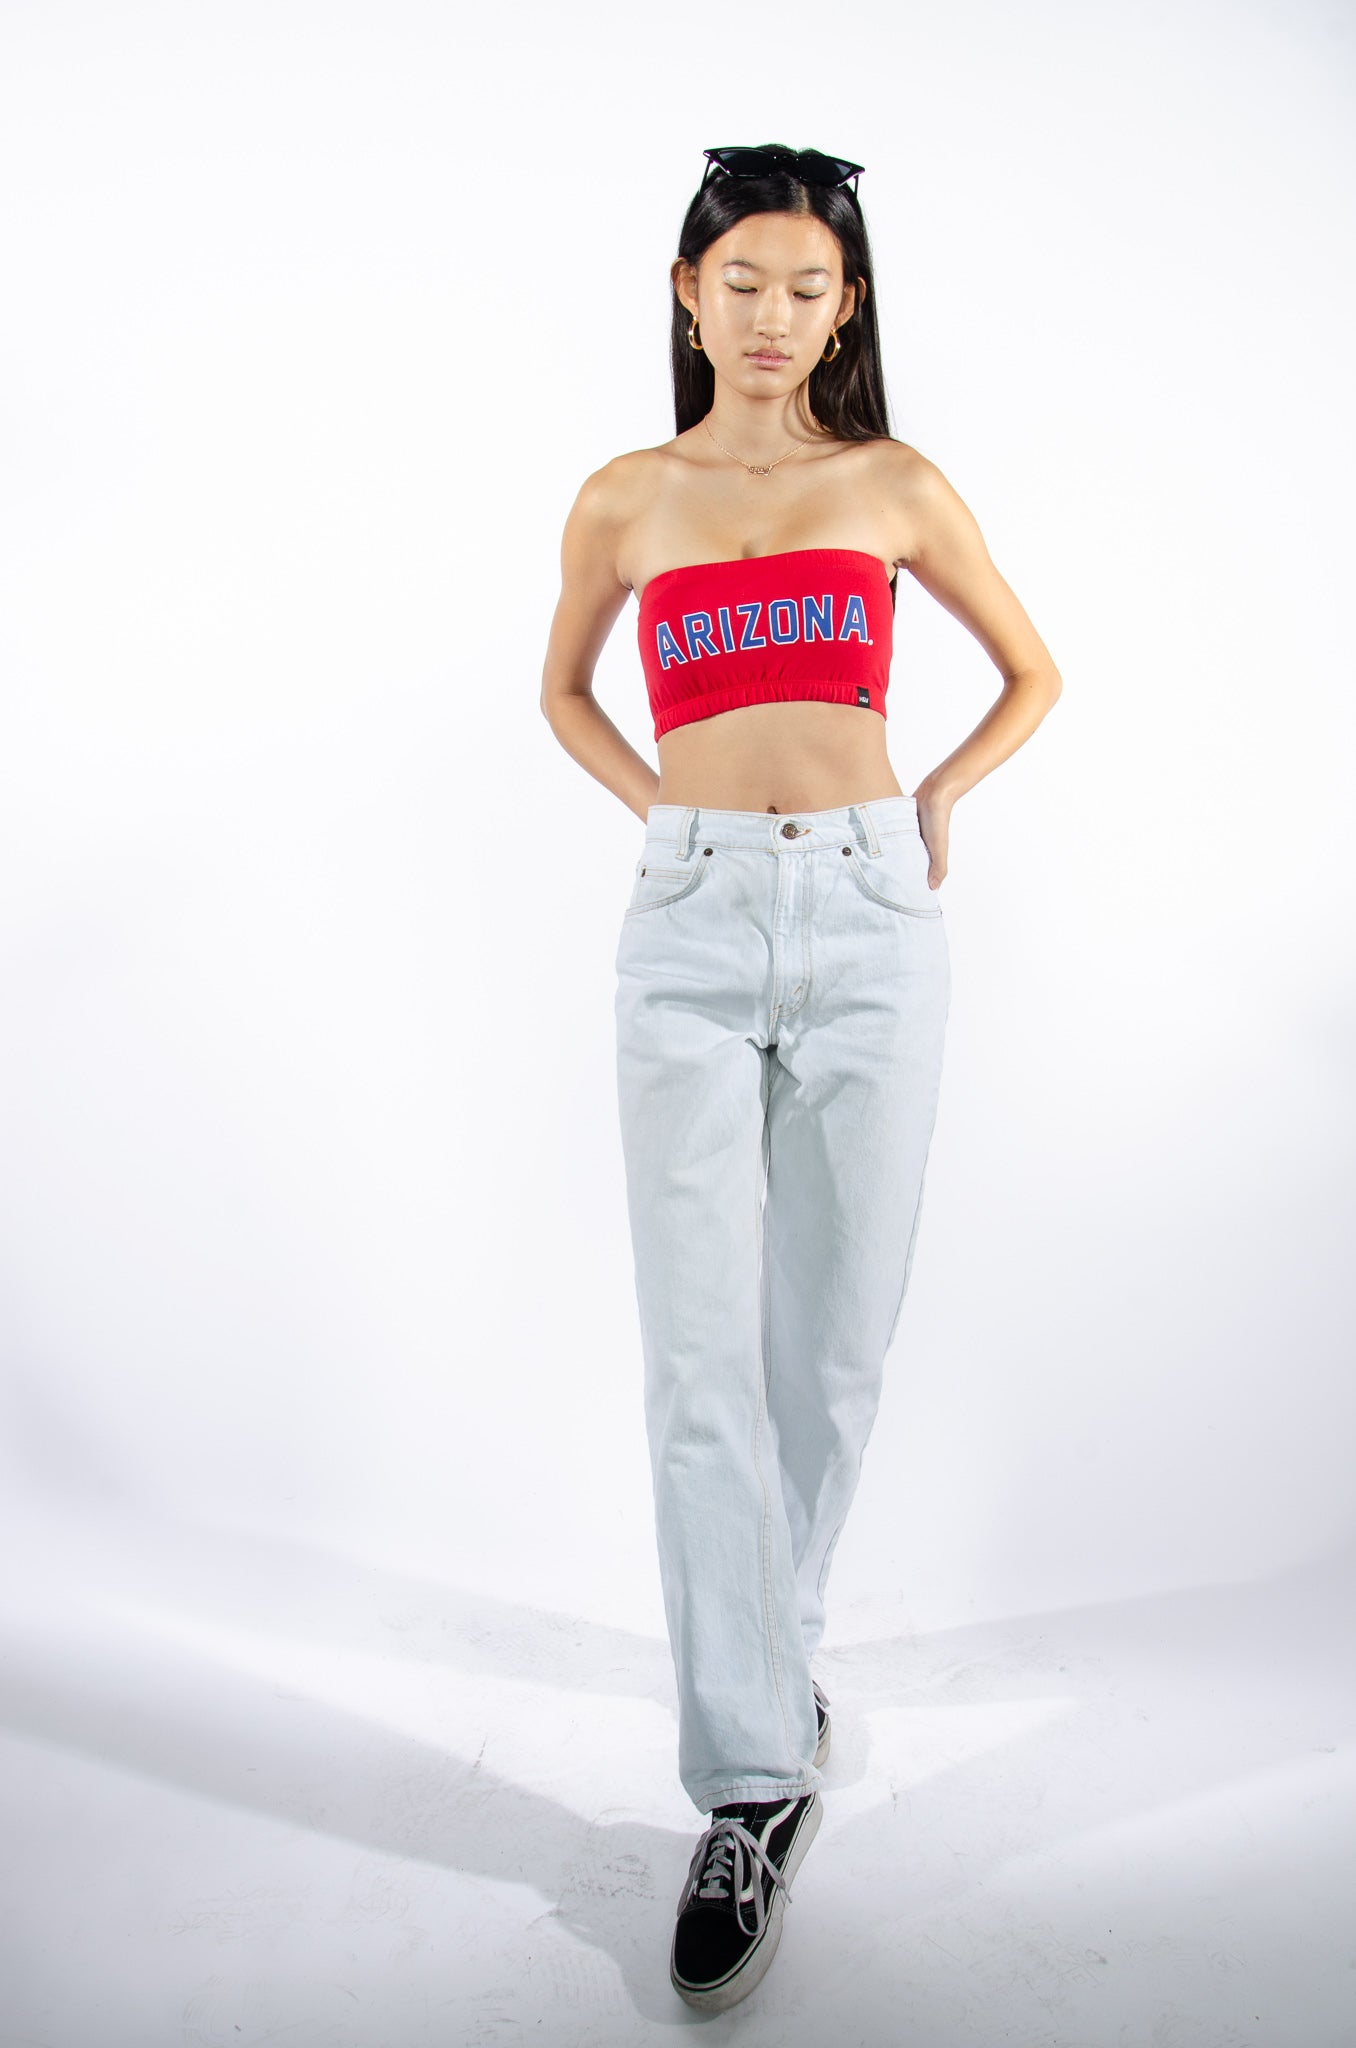 Arizona Red Bandeau Top - Hype and Vice